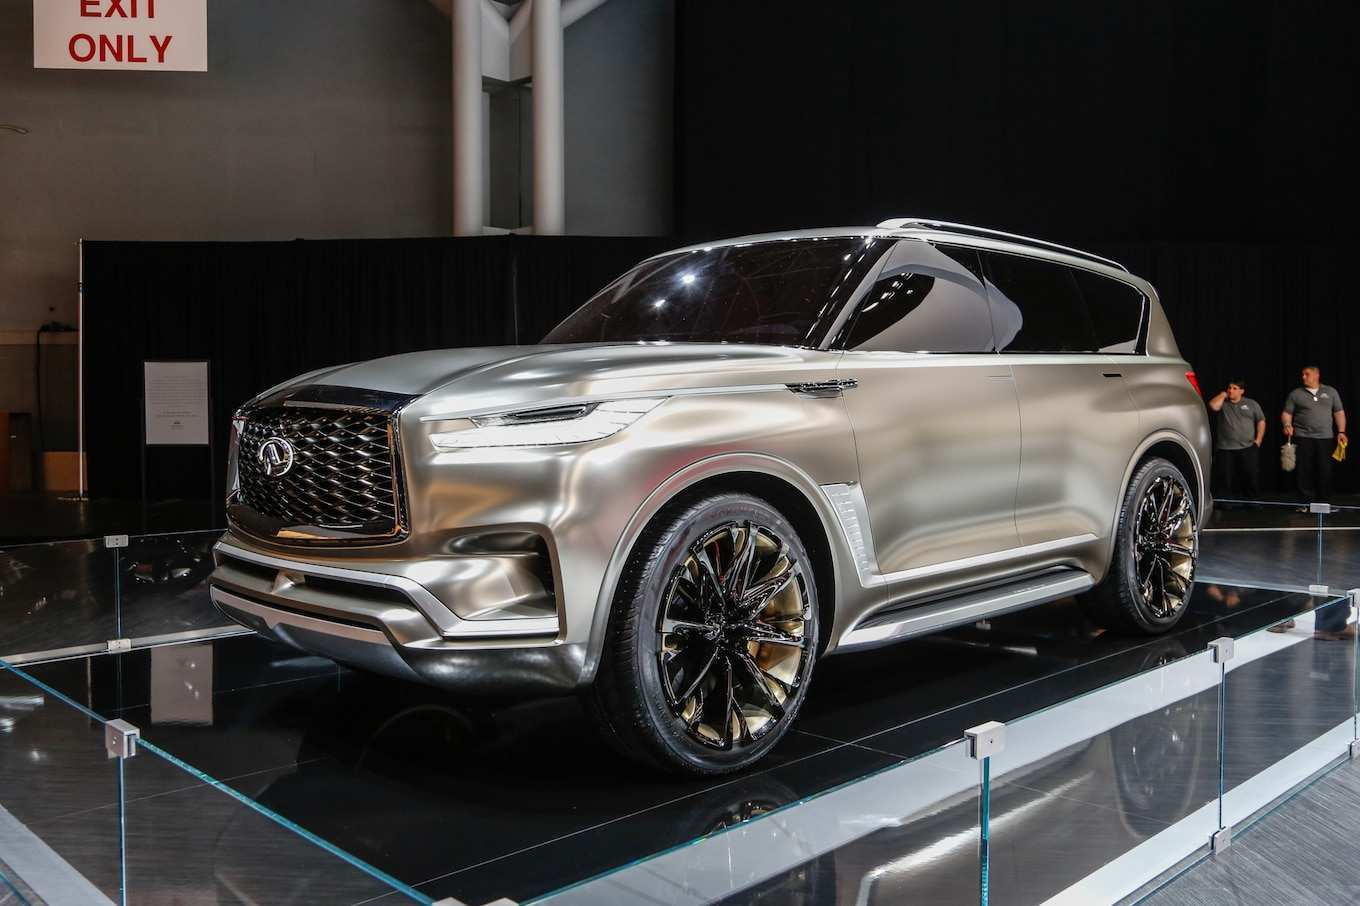 96 The Best 2020 Infiniti Qx80 Suv Concept And Review